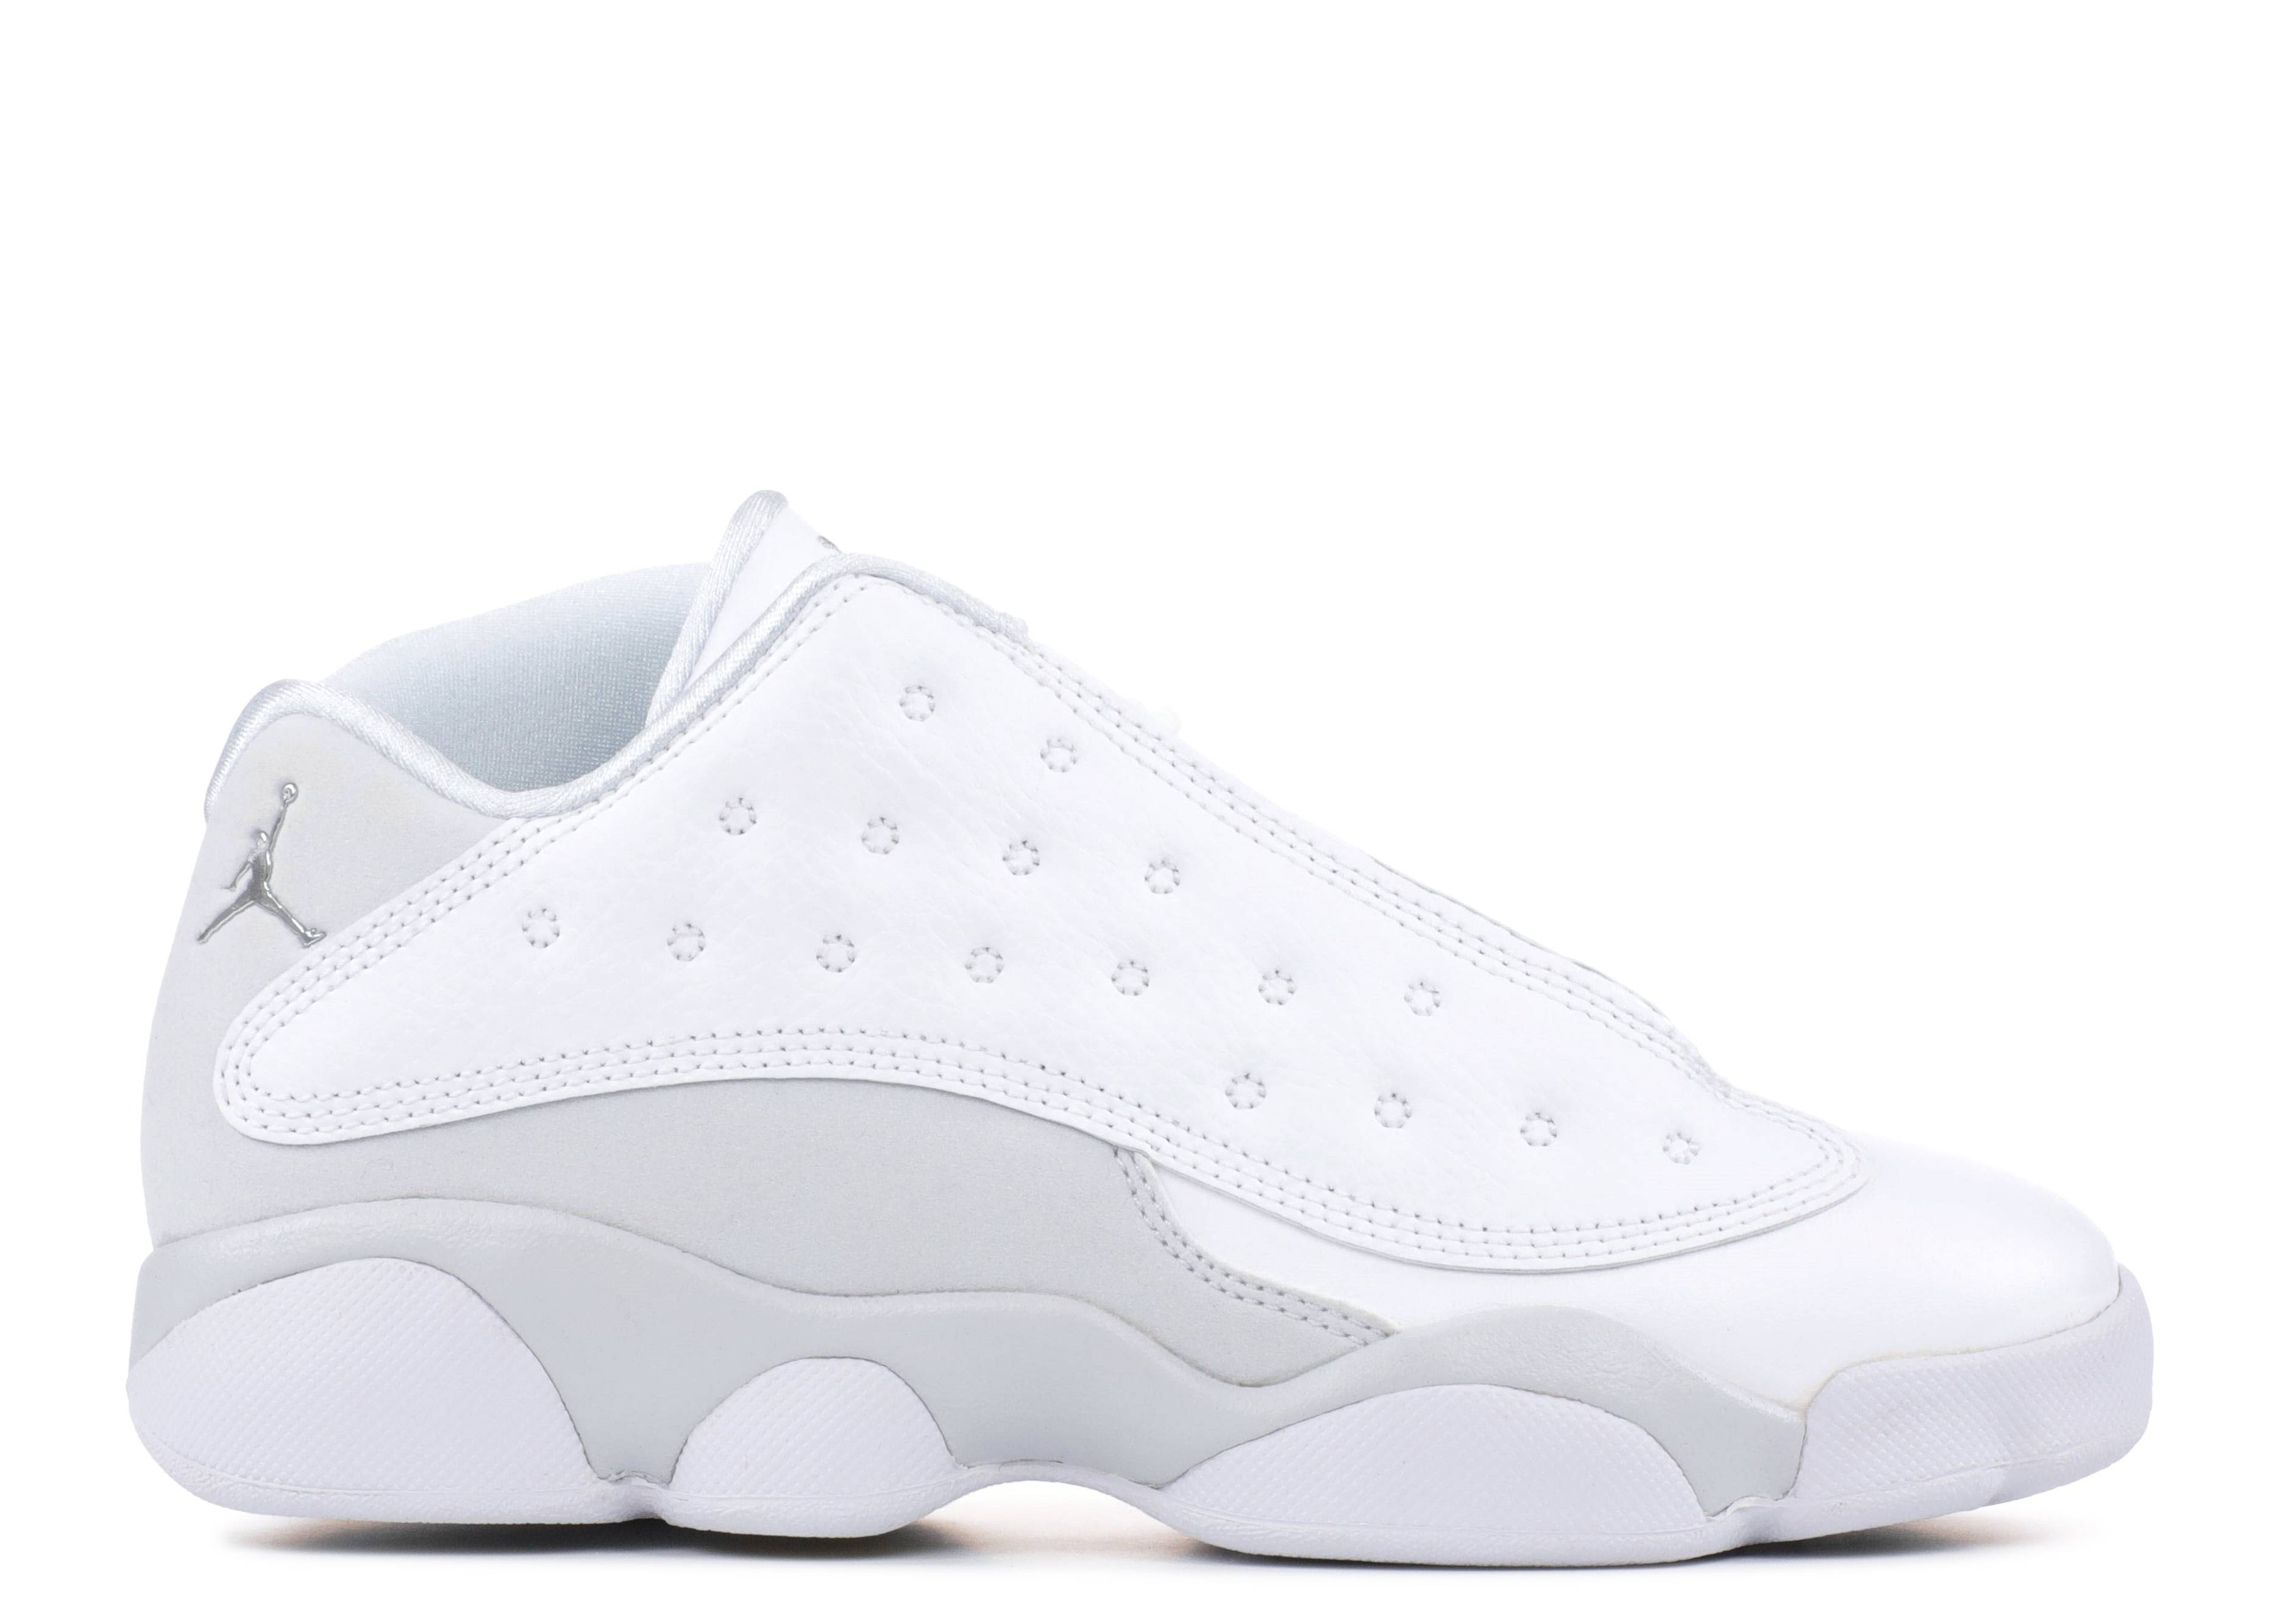 on sale be215 0b766 Jordan 13 retro low bp (td)